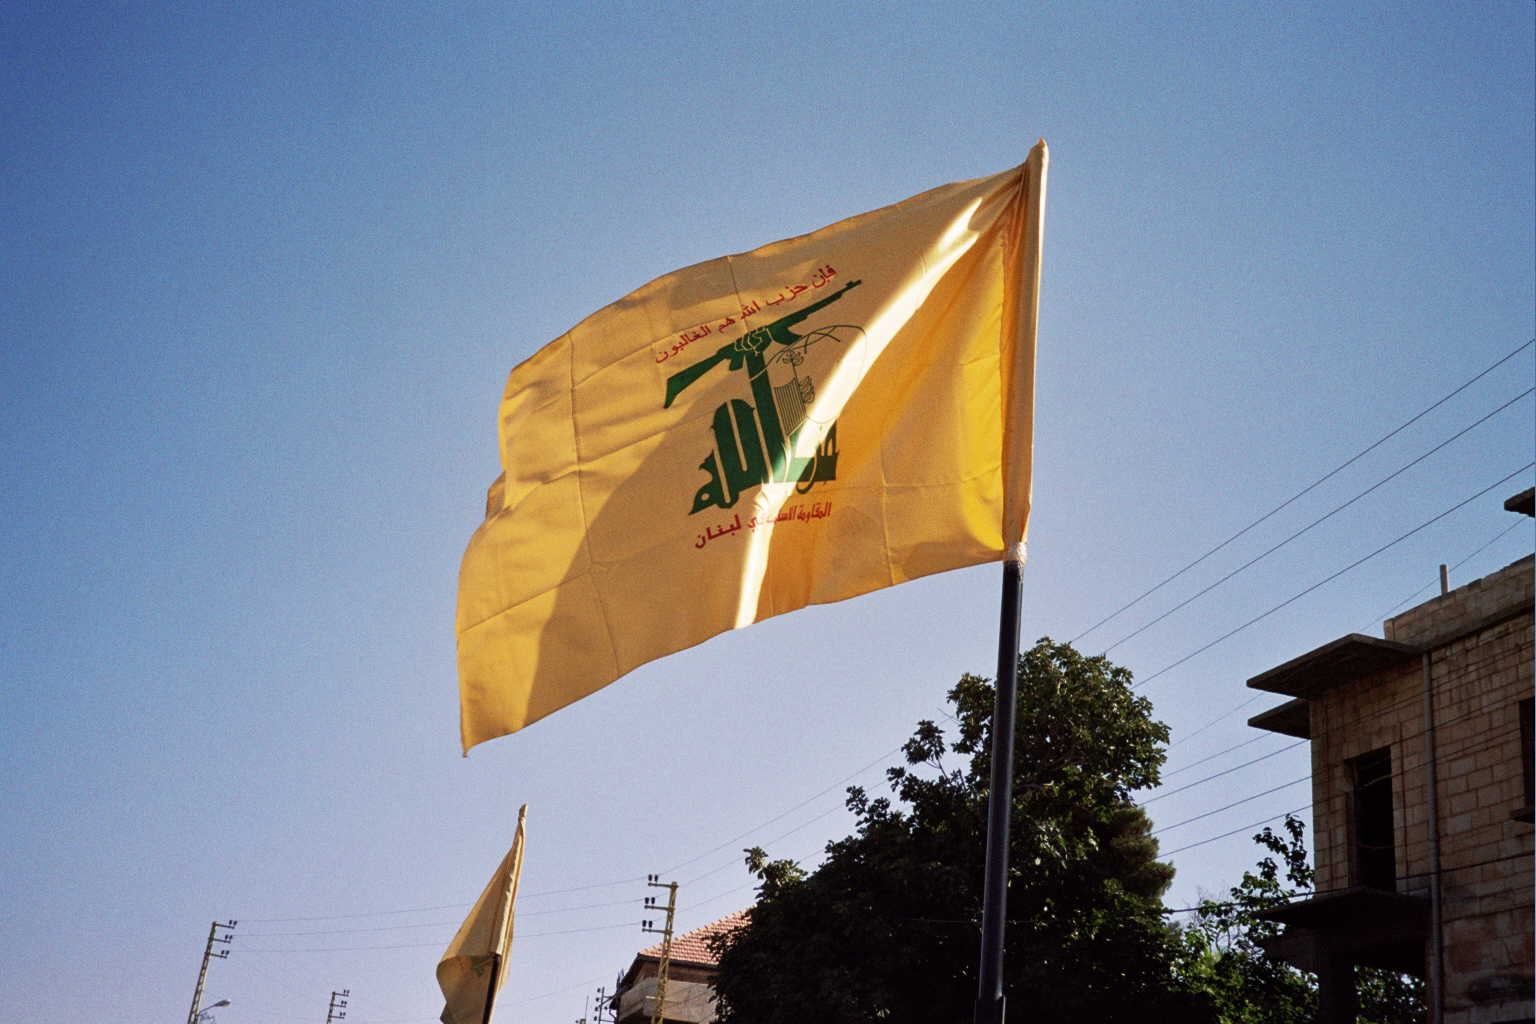 "Click photo to download. Caption: The flag of Hezbollah flies in Syria, where Hezbollah has become an active element in a civil war that has claimed the lives of 80,000 people. Credit: Hezbollah Flag/Wikimedia Commons.                 0     0     1     17     98     JNS     1     1     114     14.0                            Normal     0                     false     false     false         EN-US     JA     X-NONE                                                                                                                                                                                                                                                                                                                                                                                                                                                                                                                                                                                                                                                                                                                    /* Style Definitions */ table.MsoNormalTable 	{mso-style-name:""Table Normal""; 	mso-tstyle-rowband-size:0; 	mso-tstyle-colband-size:0; 	mso-style-noshow:yes; 	mso-style-priority:99; 	mso-style-parent:""""; 	mso-padding-alt:0in 5.4pt 0in 5.4pt; 	mso-para-margin:0in; 	mso-para-margin-bottom:.0001pt; 	mso-pagination:widow-orphan; 	font-size:12.0pt; 	font-family:Cambria; 	mso-ascii-font-family:Cambria; 	mso-ascii-theme-font:minor-latin; 	mso-hansi-font-family:Cambria; 	mso-hansi-theme-font:minor-latin;}"